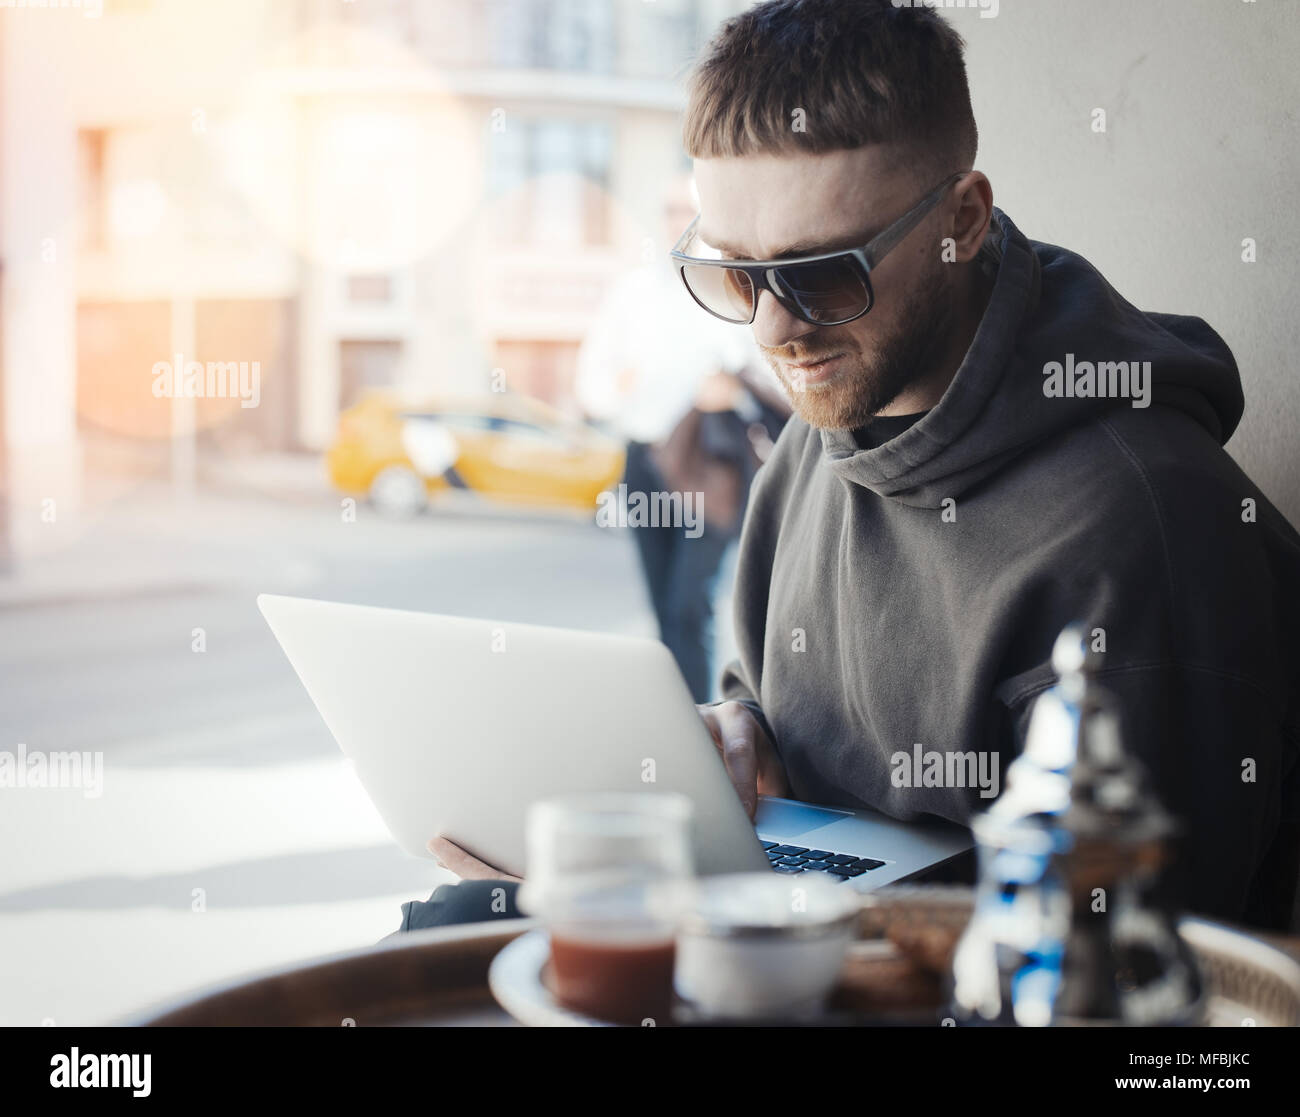 Pensive young man holding laptop on his knees and working on it in cafe. PC and man are on focus and background. Cutlery and tea are on foreground - Stock Image